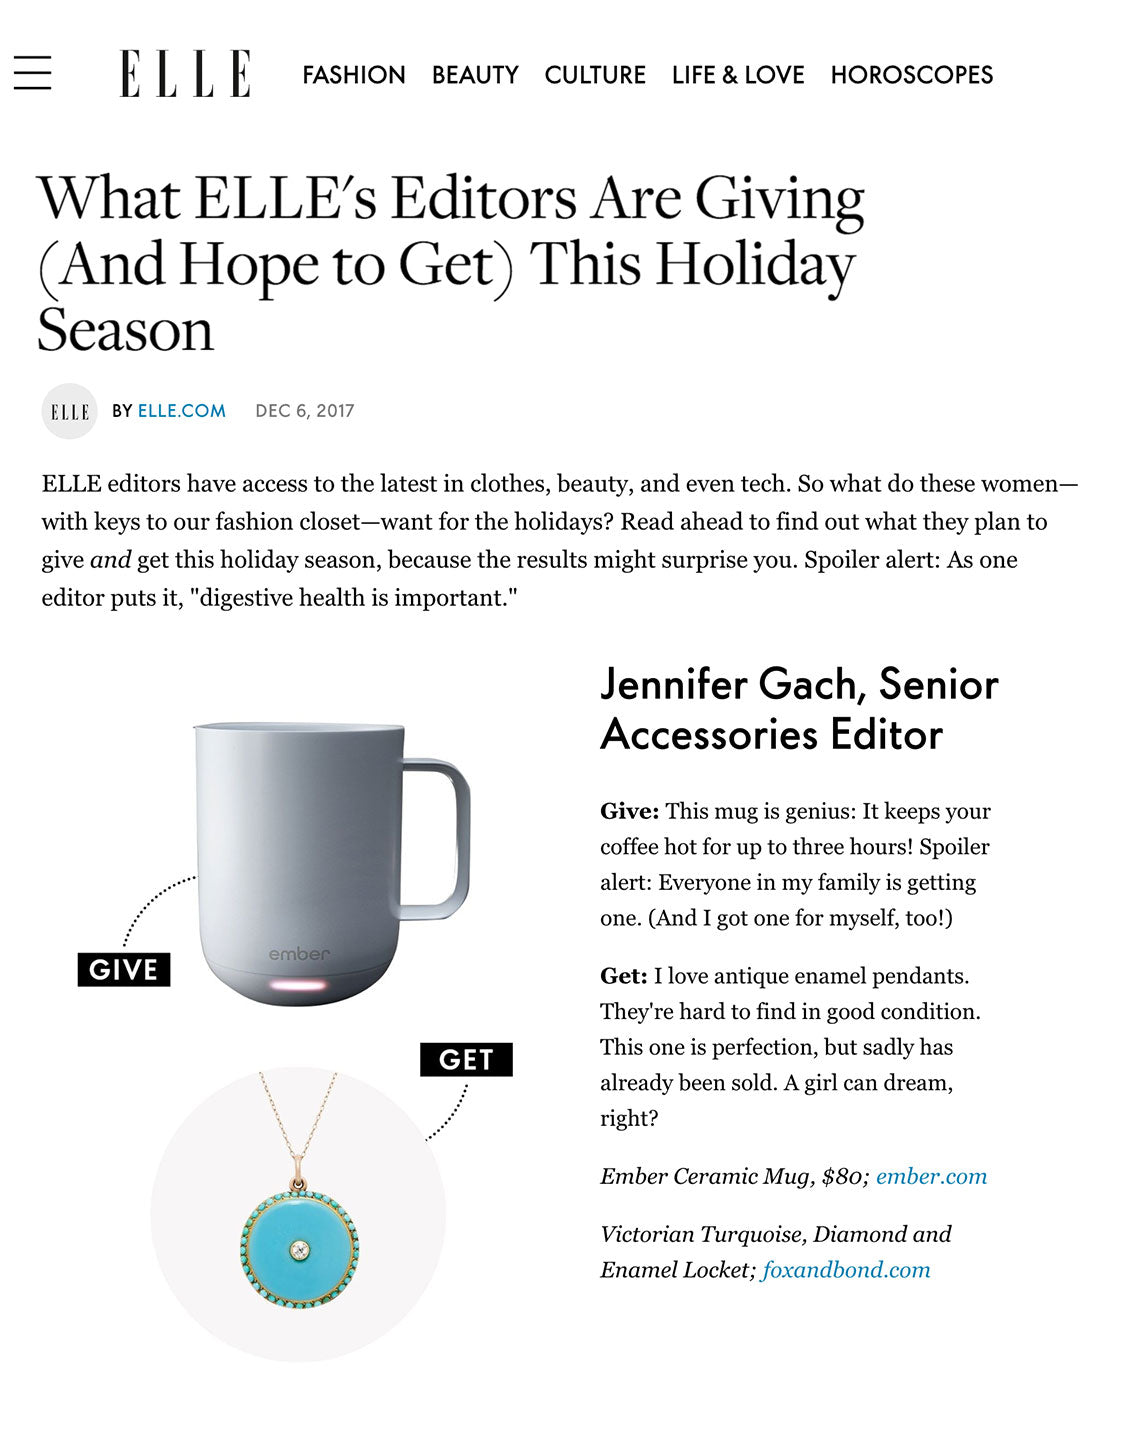 ELLE.com: What ELLE's Editors Are Giving (And Hope to Get) This Holiday Season